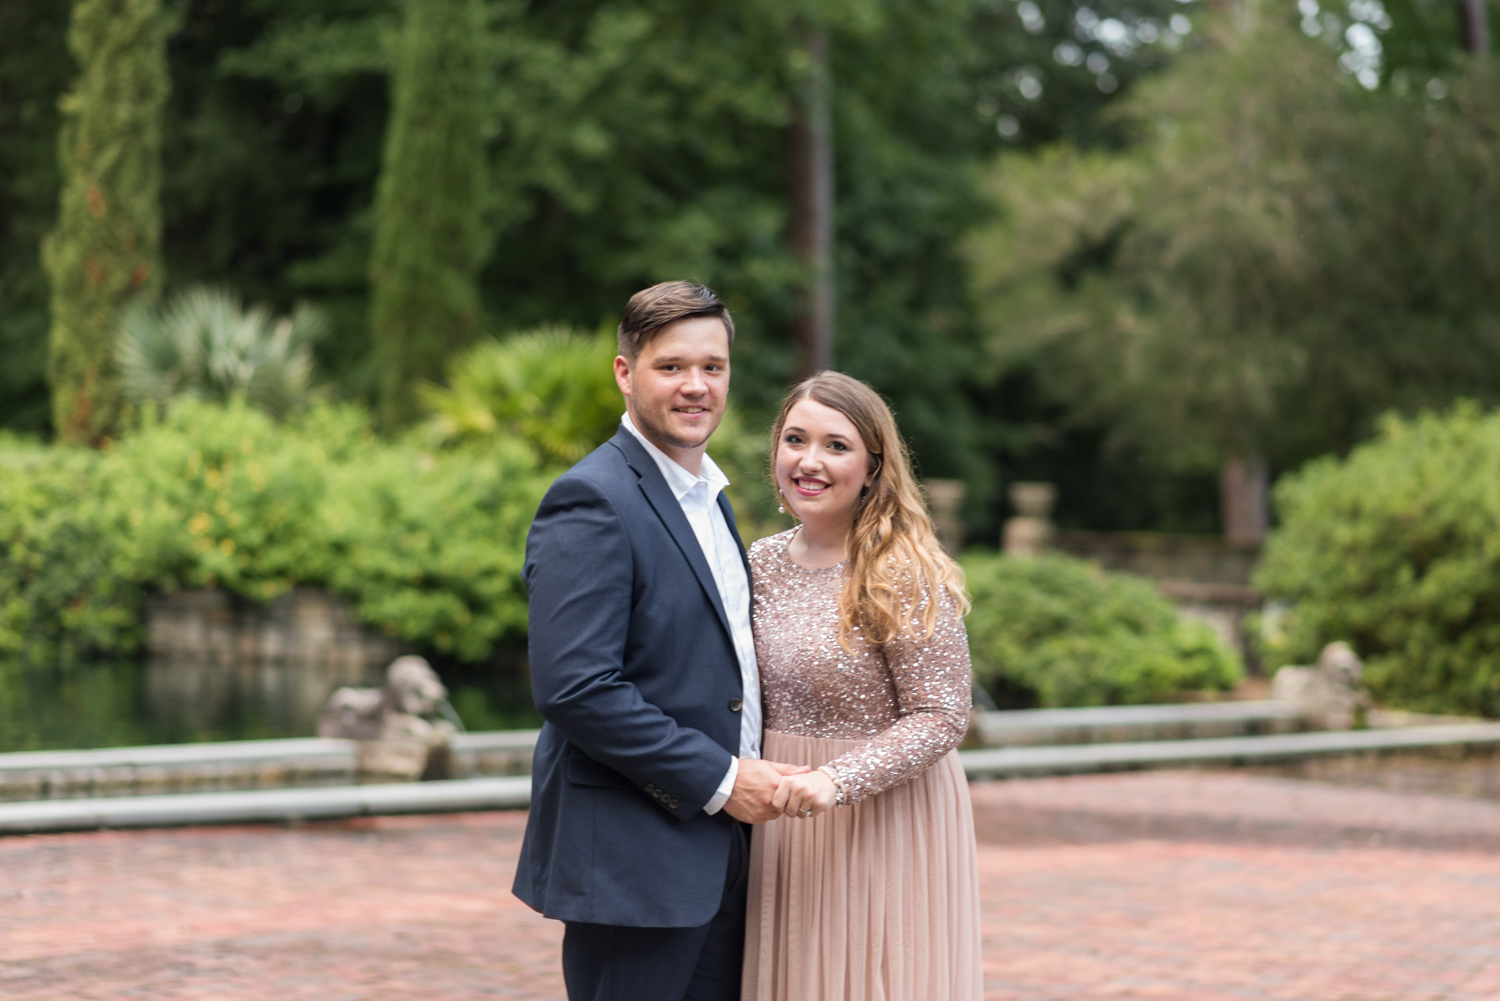 Formal Engagement Session at Norfolk Botanical Garden-37.jpg